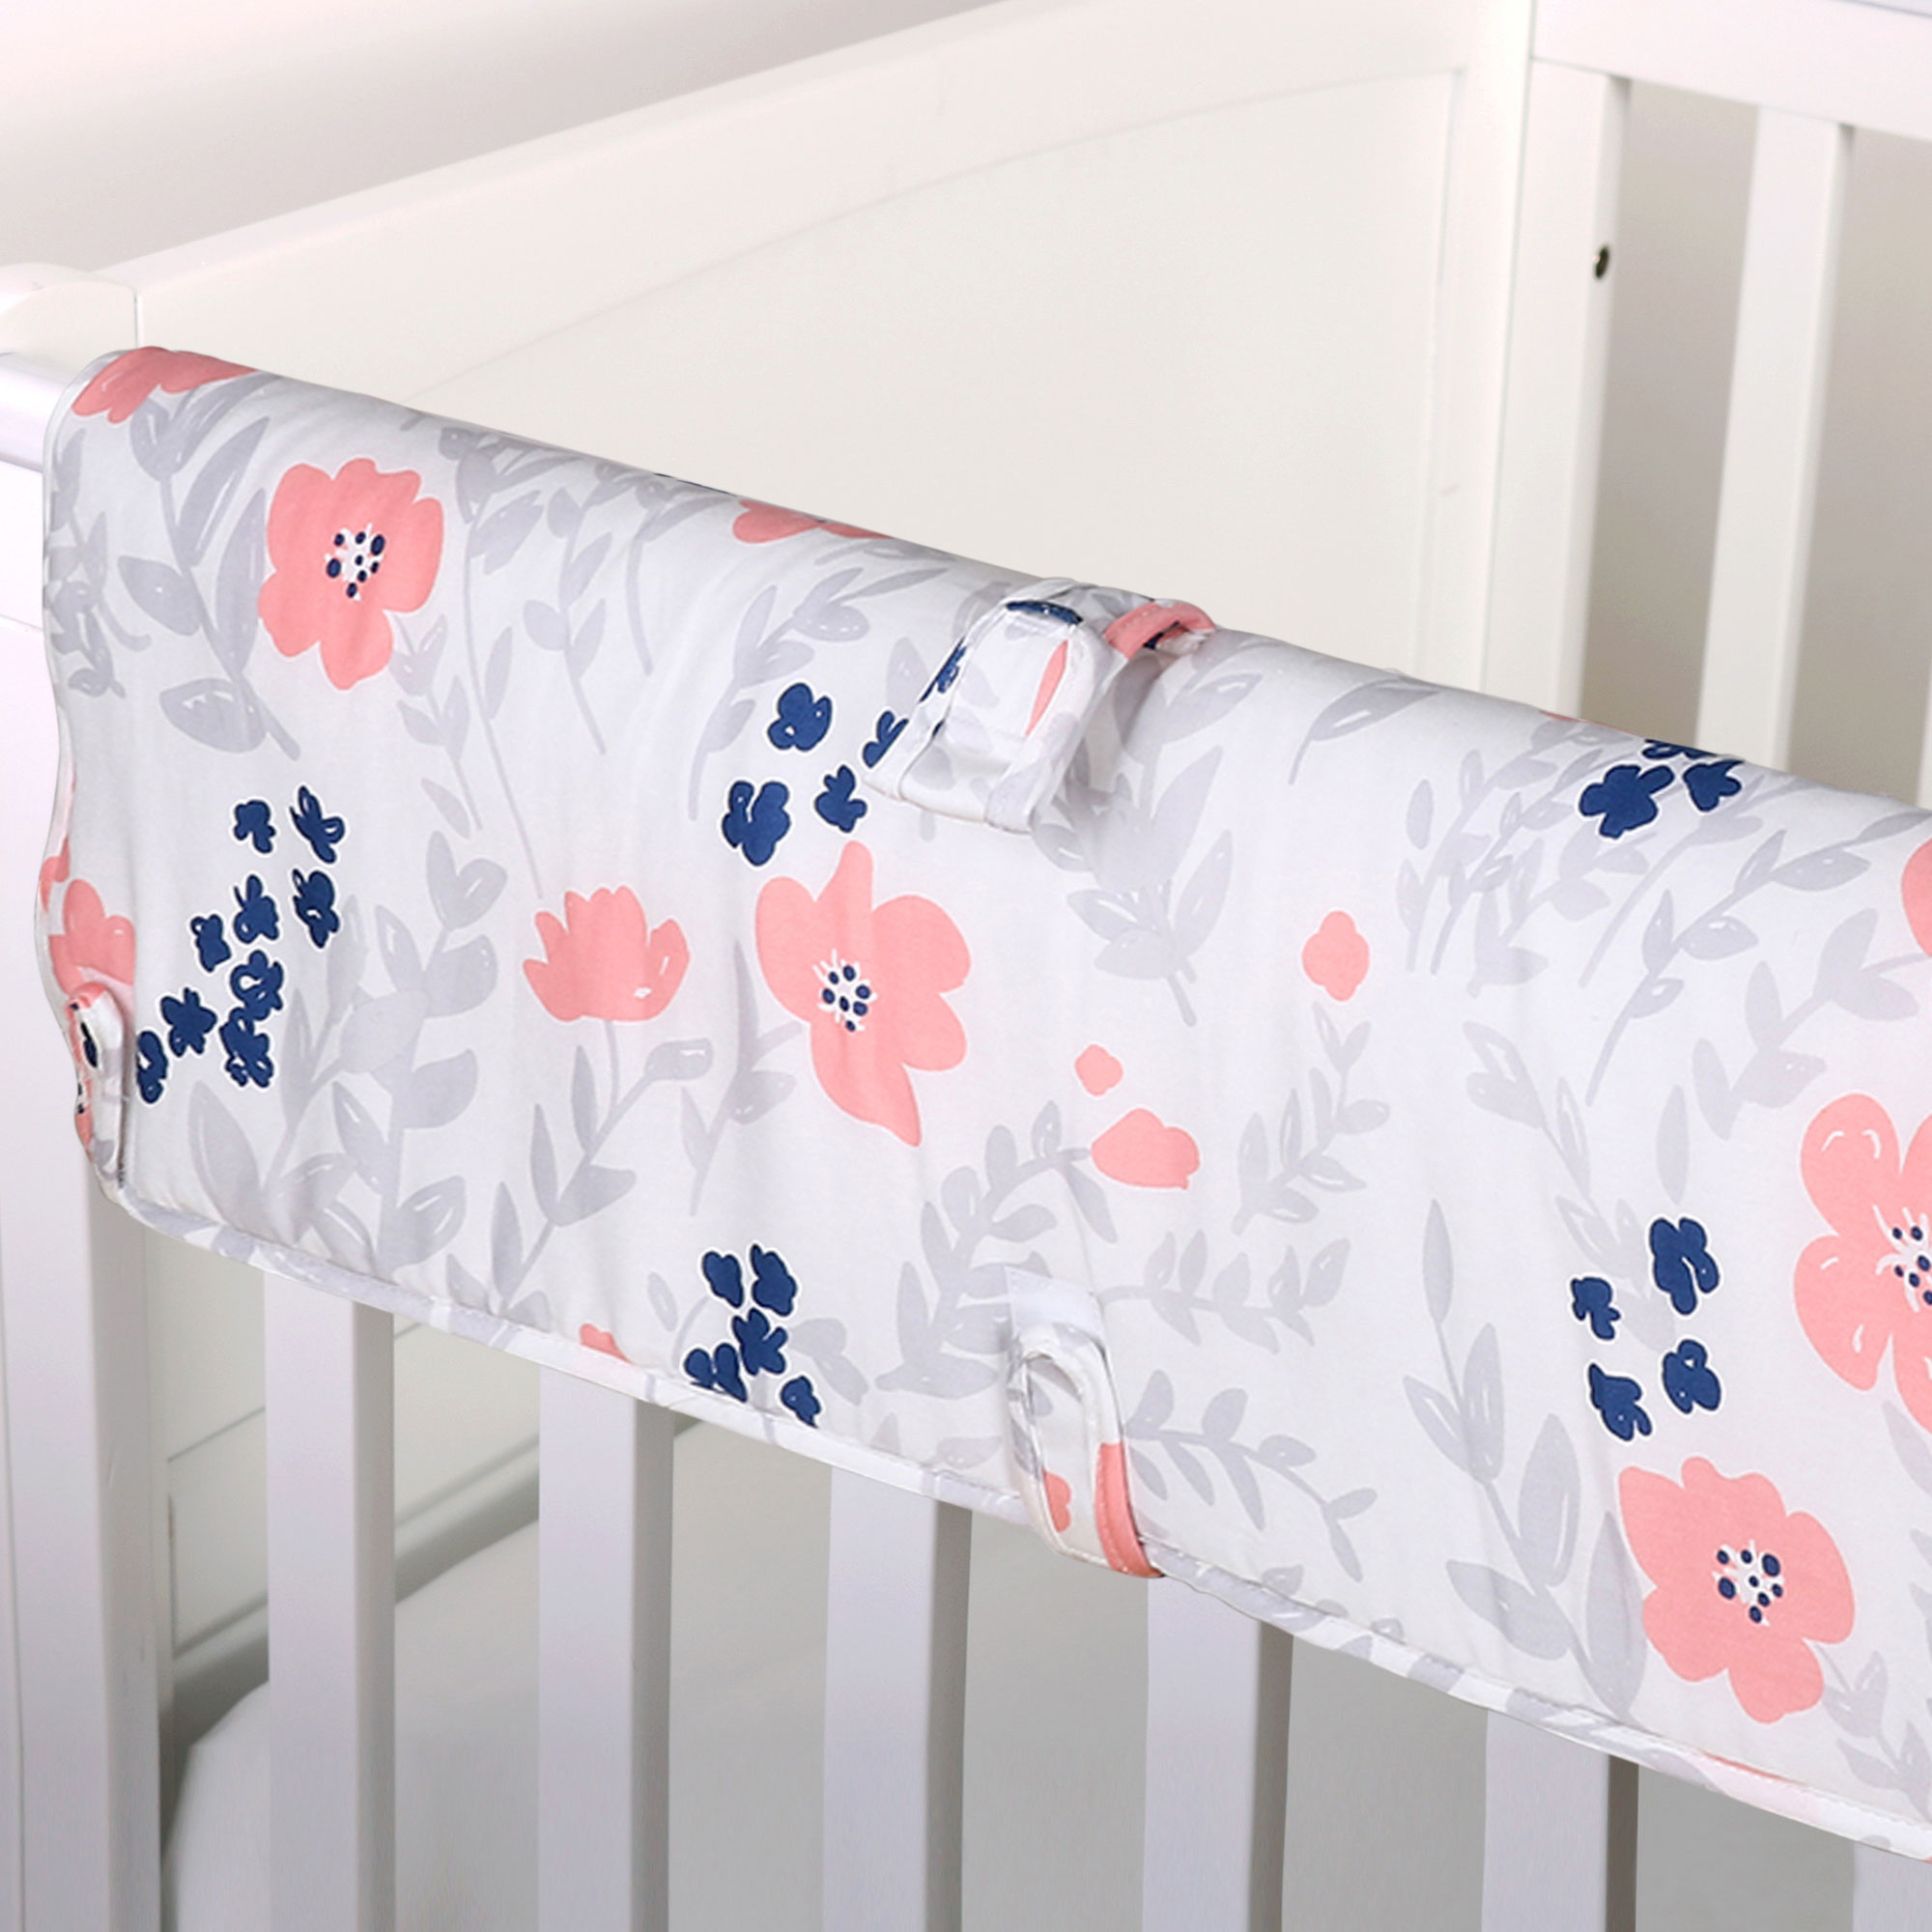 The Peanut Shell Baby Crib Rail Guard - Coral Pink and Navy Blue Floral Print - 100% Cotton Sateen Cover, Polyester Fill